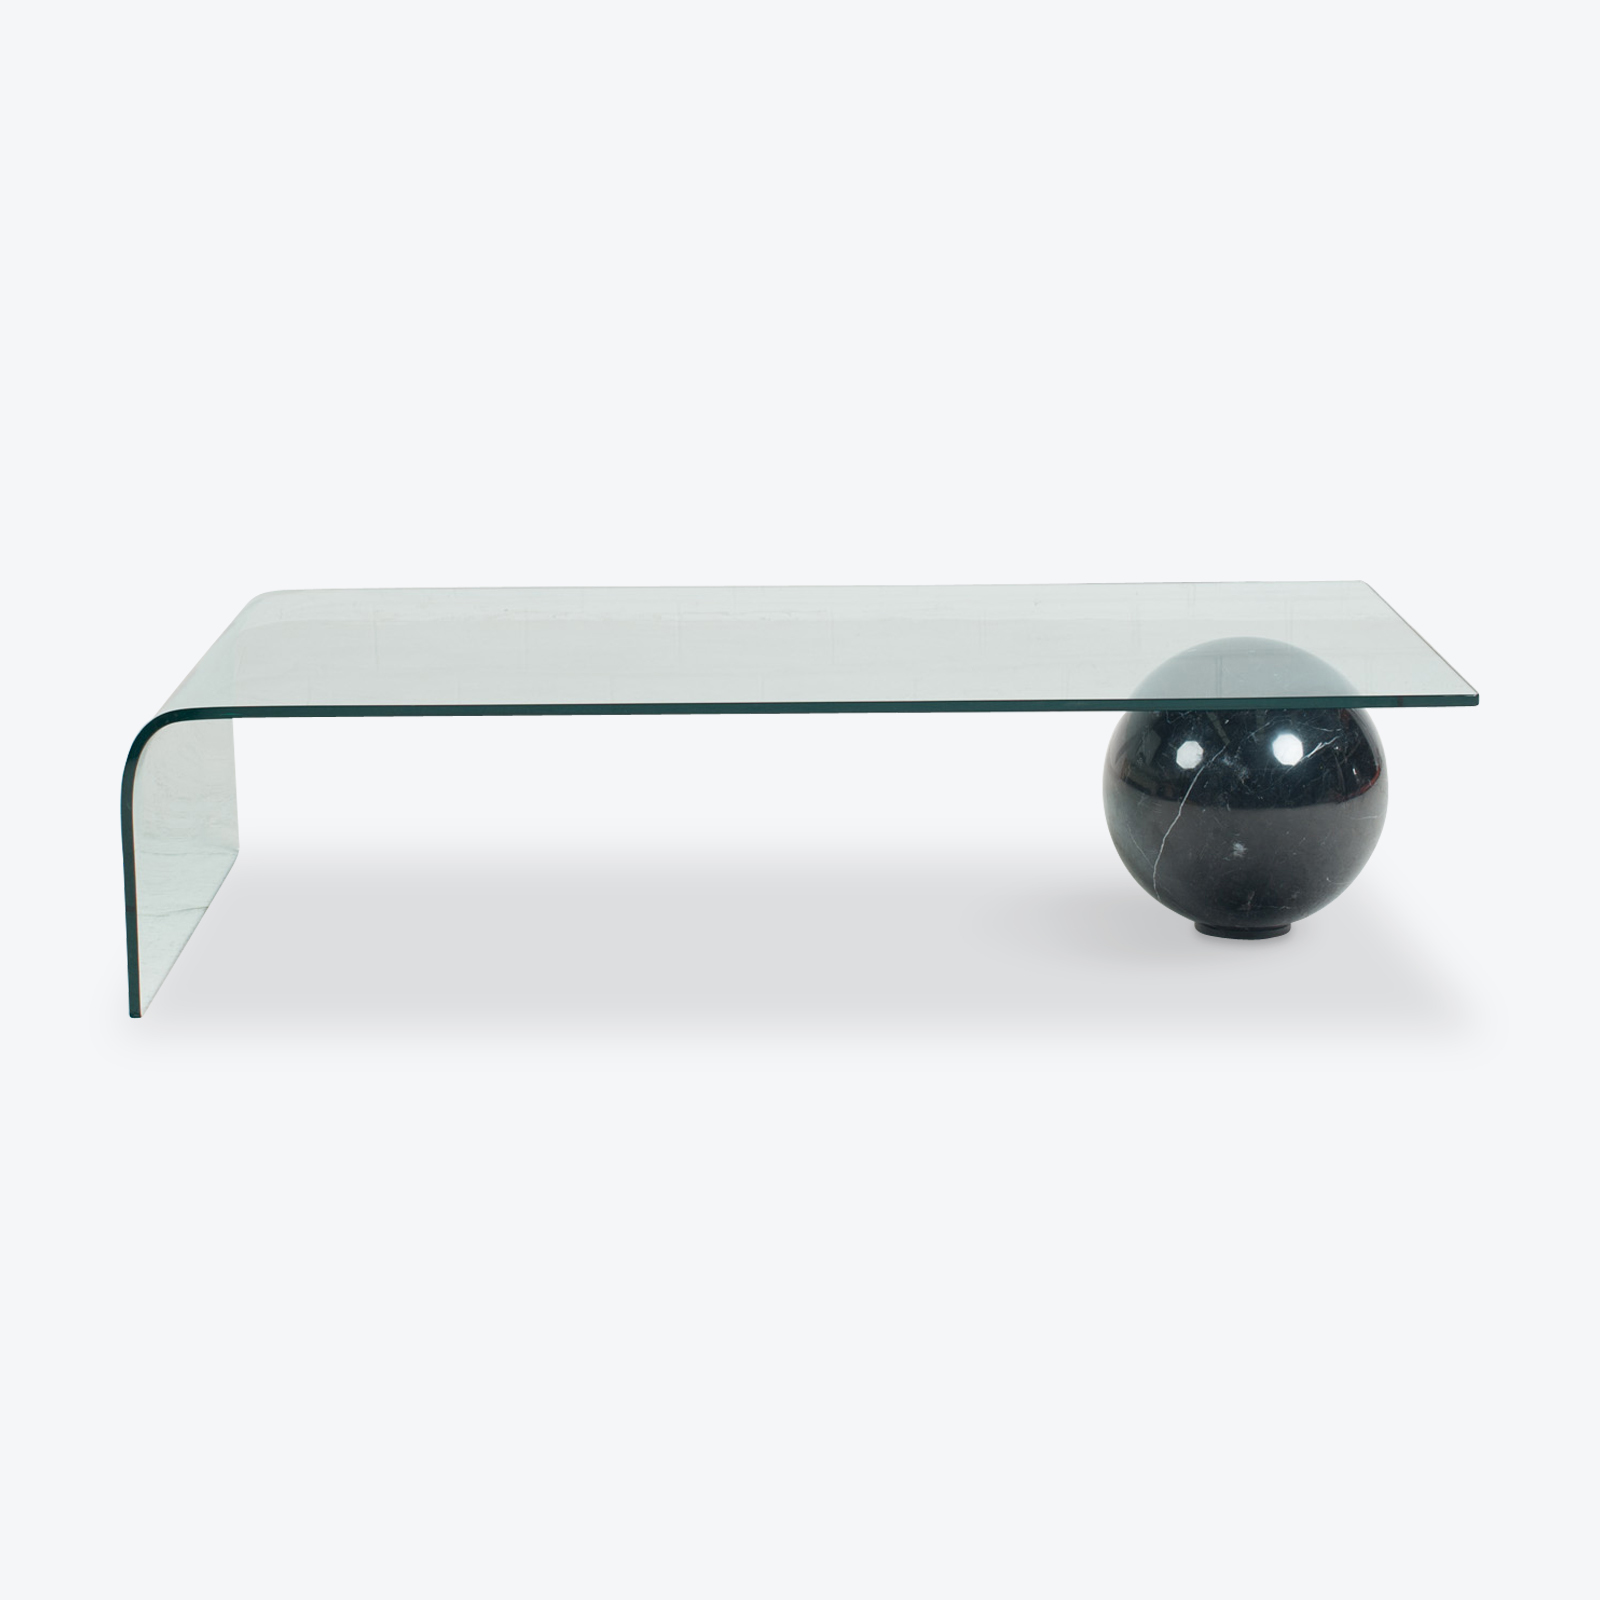 Italian Glass Coffee Table.Rectangular Coffee Table In Curved Glass And Marble 1970s Italy